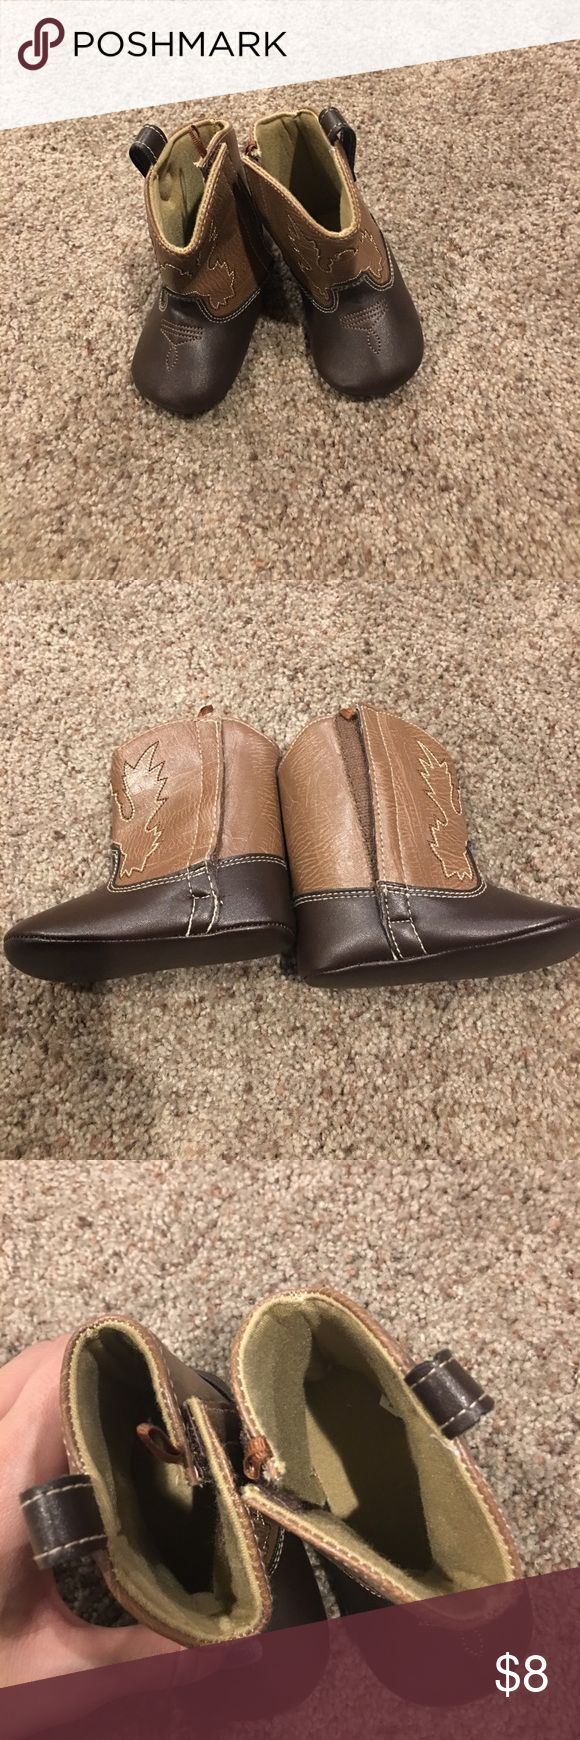 Cowboy boot slippers size 6-12 months brand new Cowboy boot slippers size 6-12 months never worn new without tags Shoes Boots